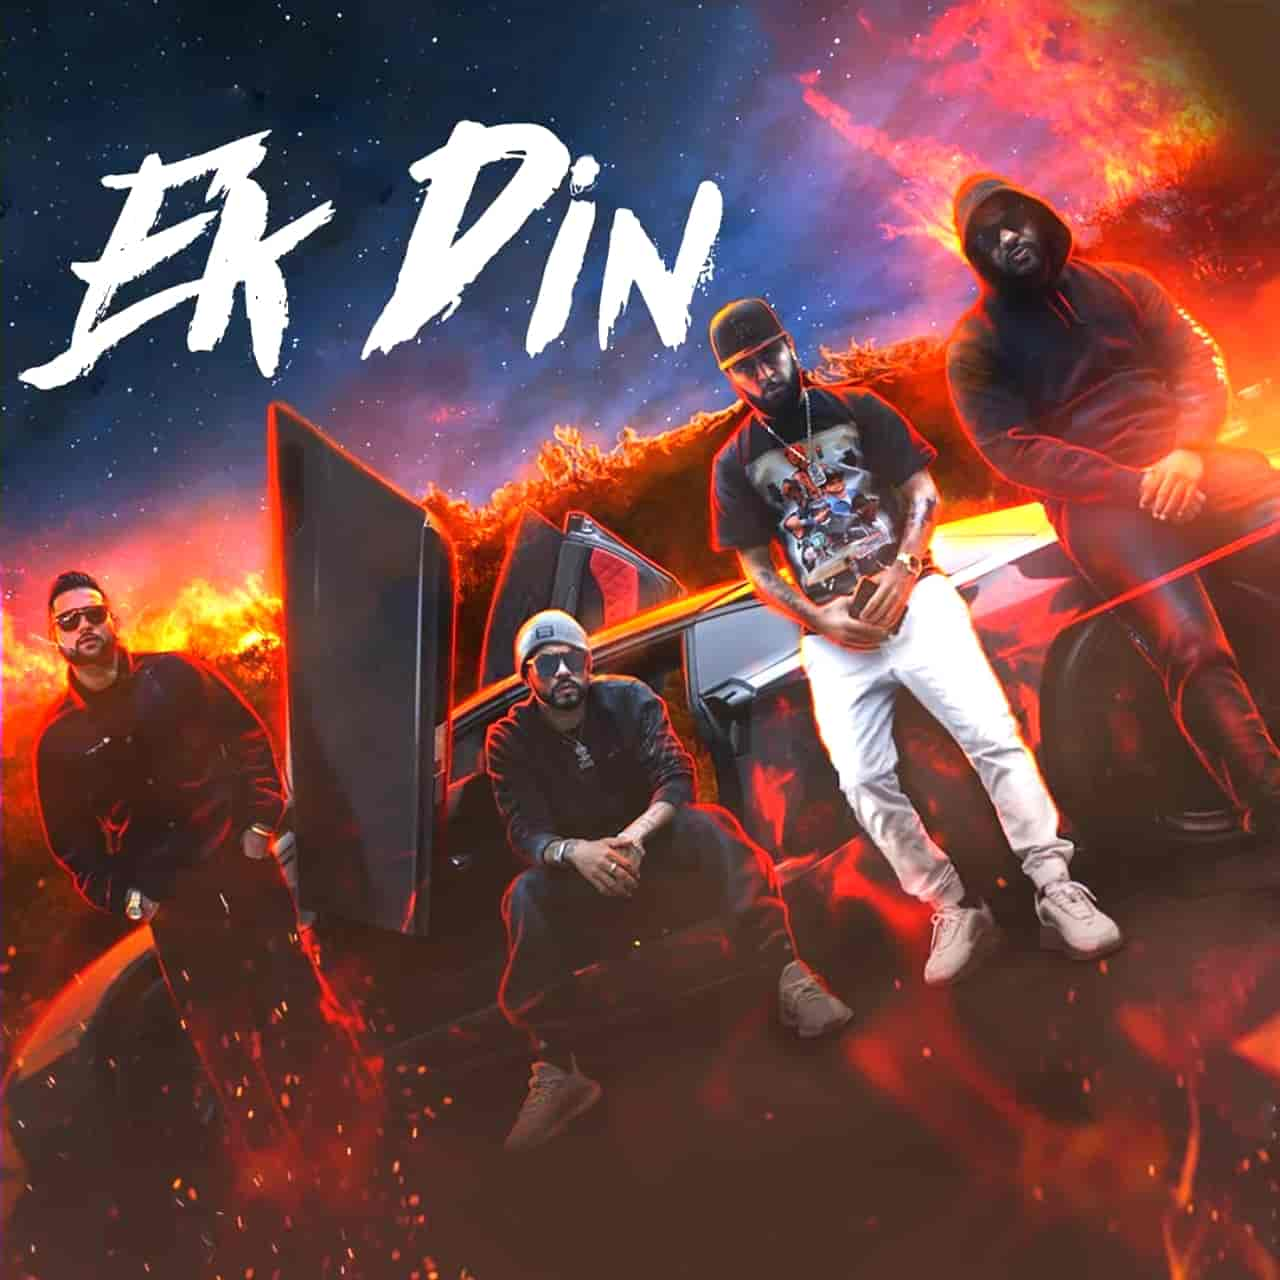 Ek Din Punjabi Rap Song Image Features Bohemia and Karan Aujla